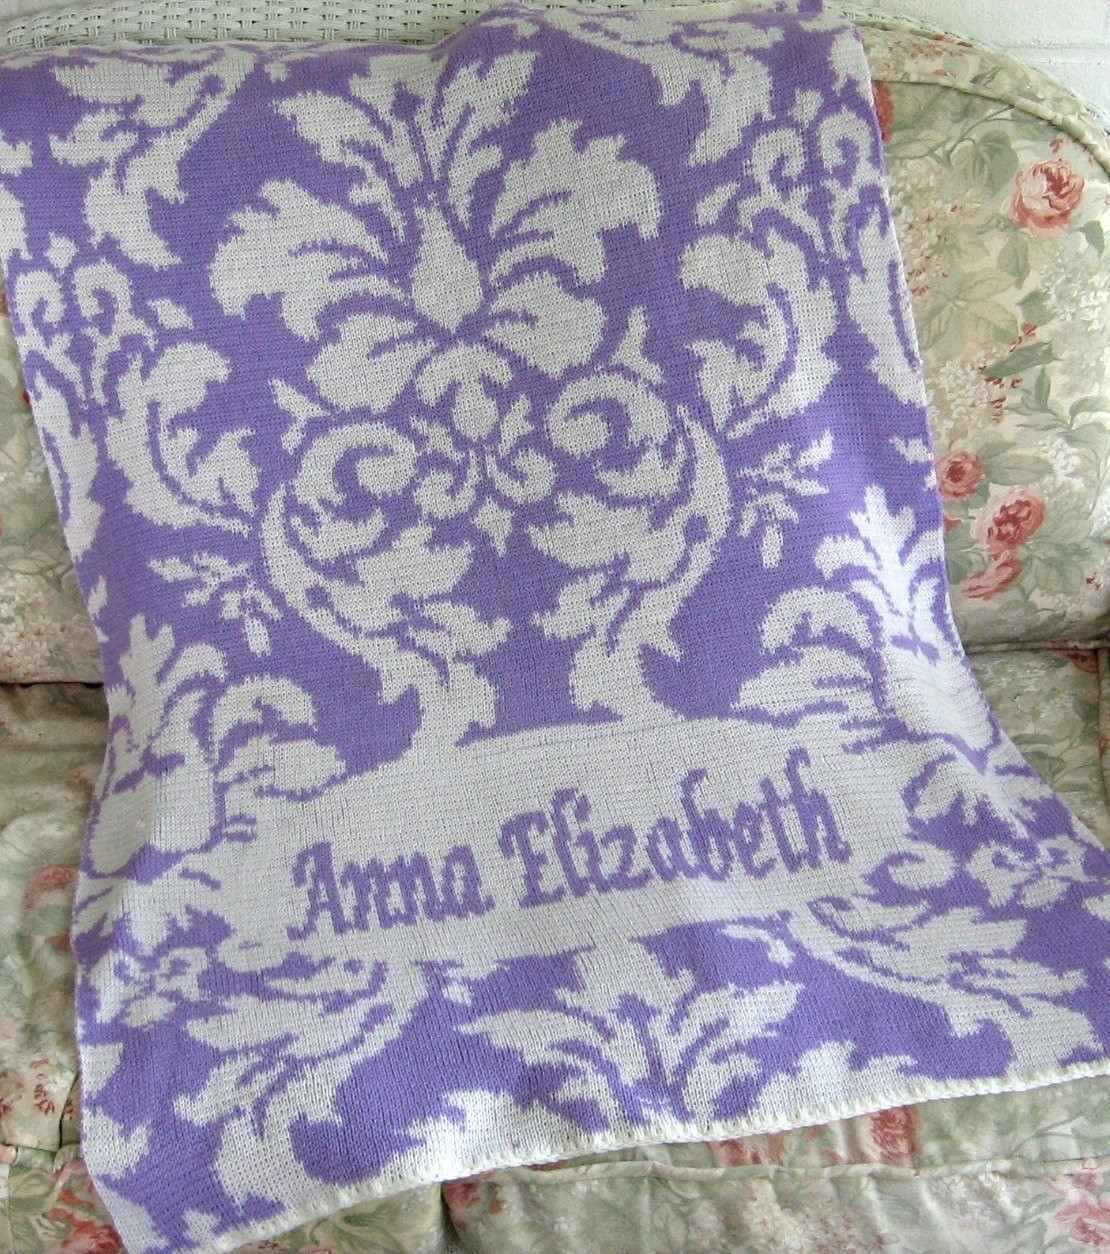 Unique Baby Blankets Inspirational Personalized Knit Damask Baby Blanket Of Innovative 40 Ideas Unique Baby Blankets